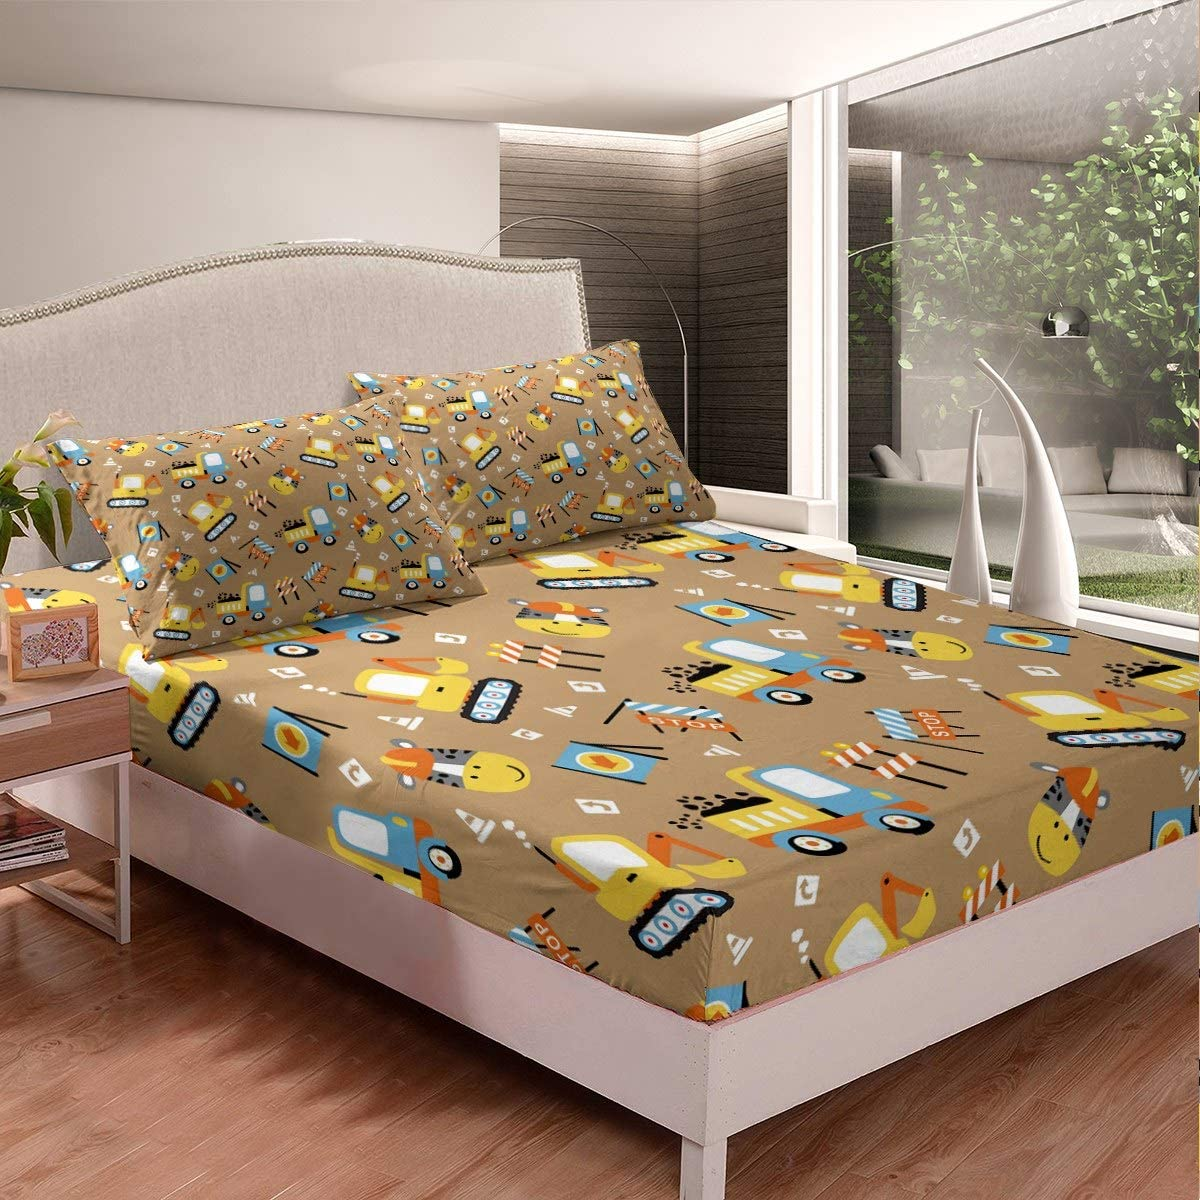 Loussiesd Girls Tokyo Tower Fitted Sheet for Kids Men Women Japan Famous Cityscape Bedding Set Modern City Building Bed Sheet Set Japanese-Style Decor Bed Cover Double Size With 2 Pillow Case